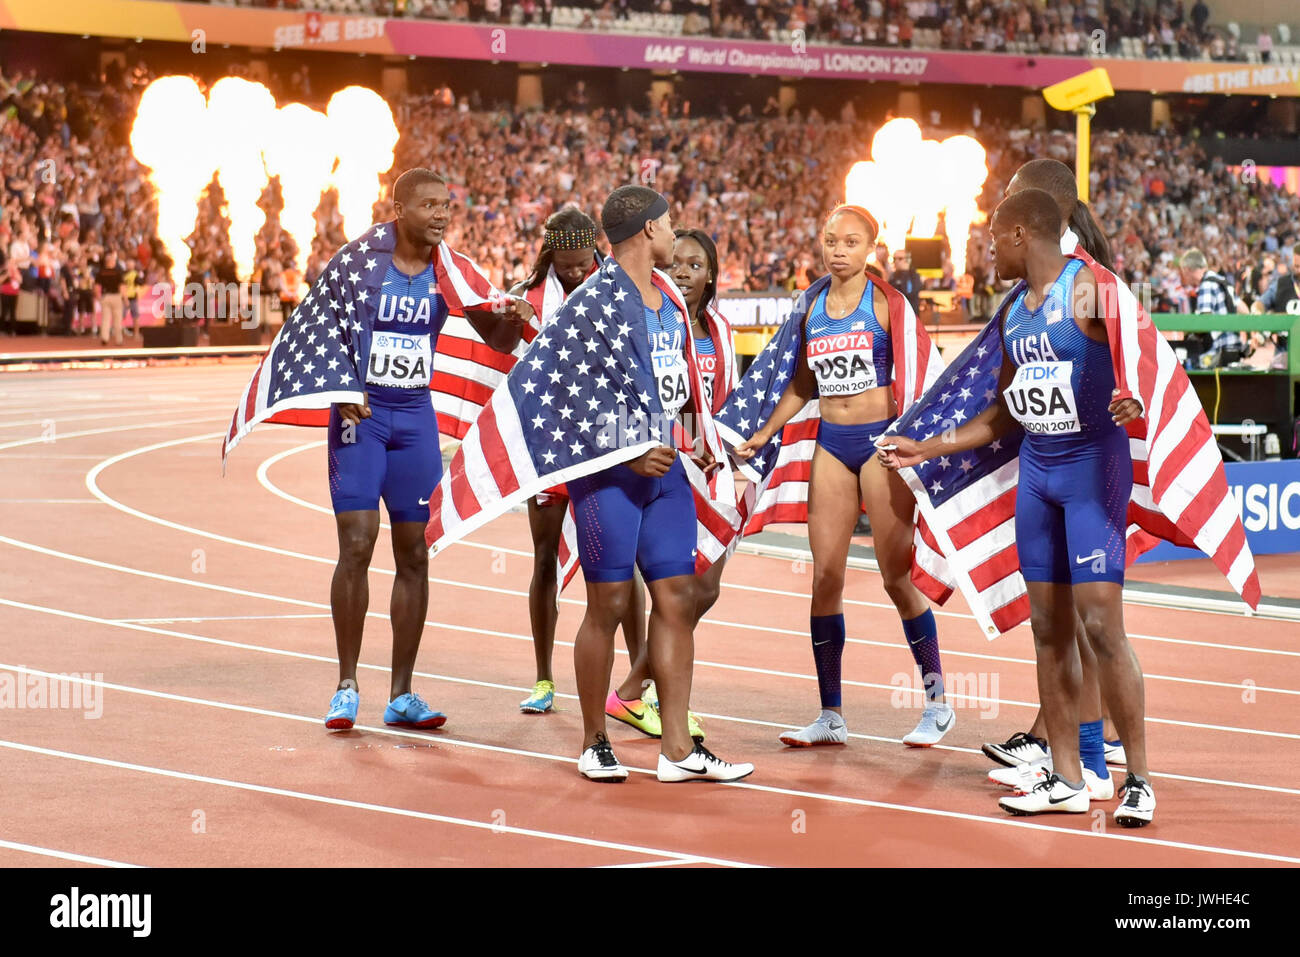 London, UK.  12 August 2017. Team USA celebrate their gold in the women's 4x100m relay and silver in the men's 4 x100m relay at the London Stadium, on day nine of The IAAF World Championships London 2017.  Credit: Stephen Chung / Alamy Live News - Stock Image